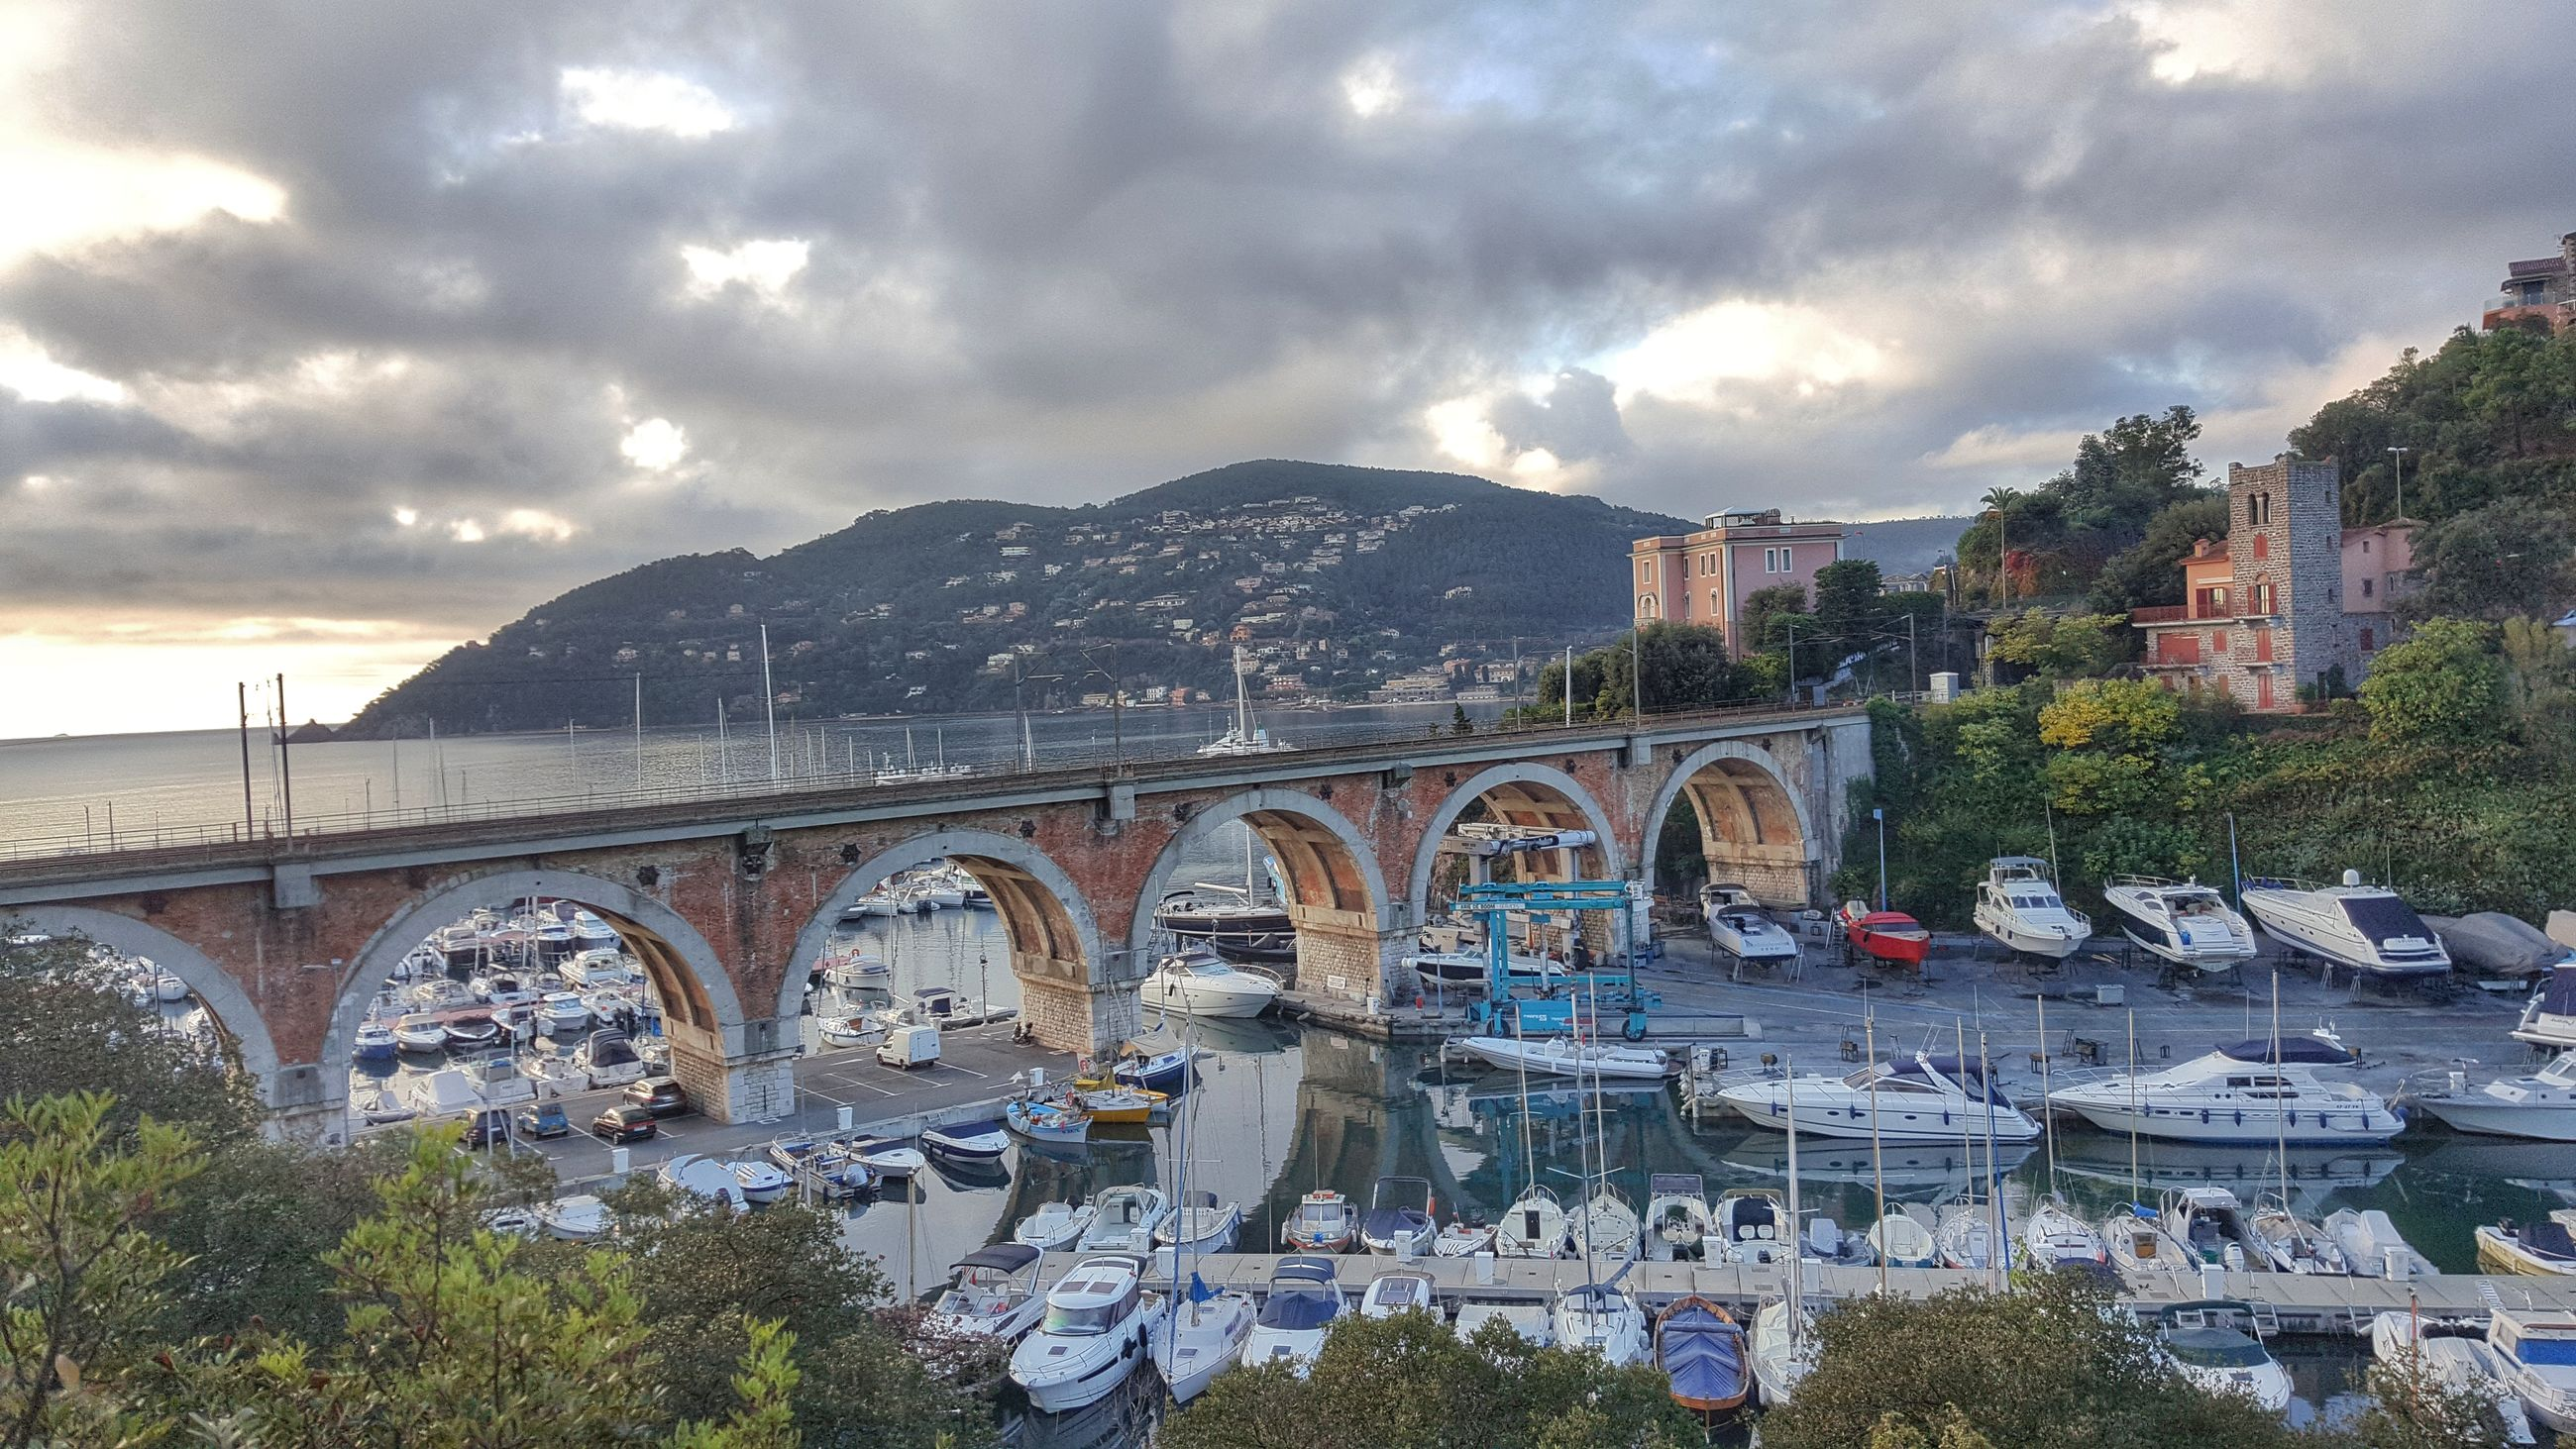 cloud - sky, bridge - man made structure, sky, city, outdoors, architecture, river, travel destinations, no people, flower, cityscape, tree, mountain, nature, day